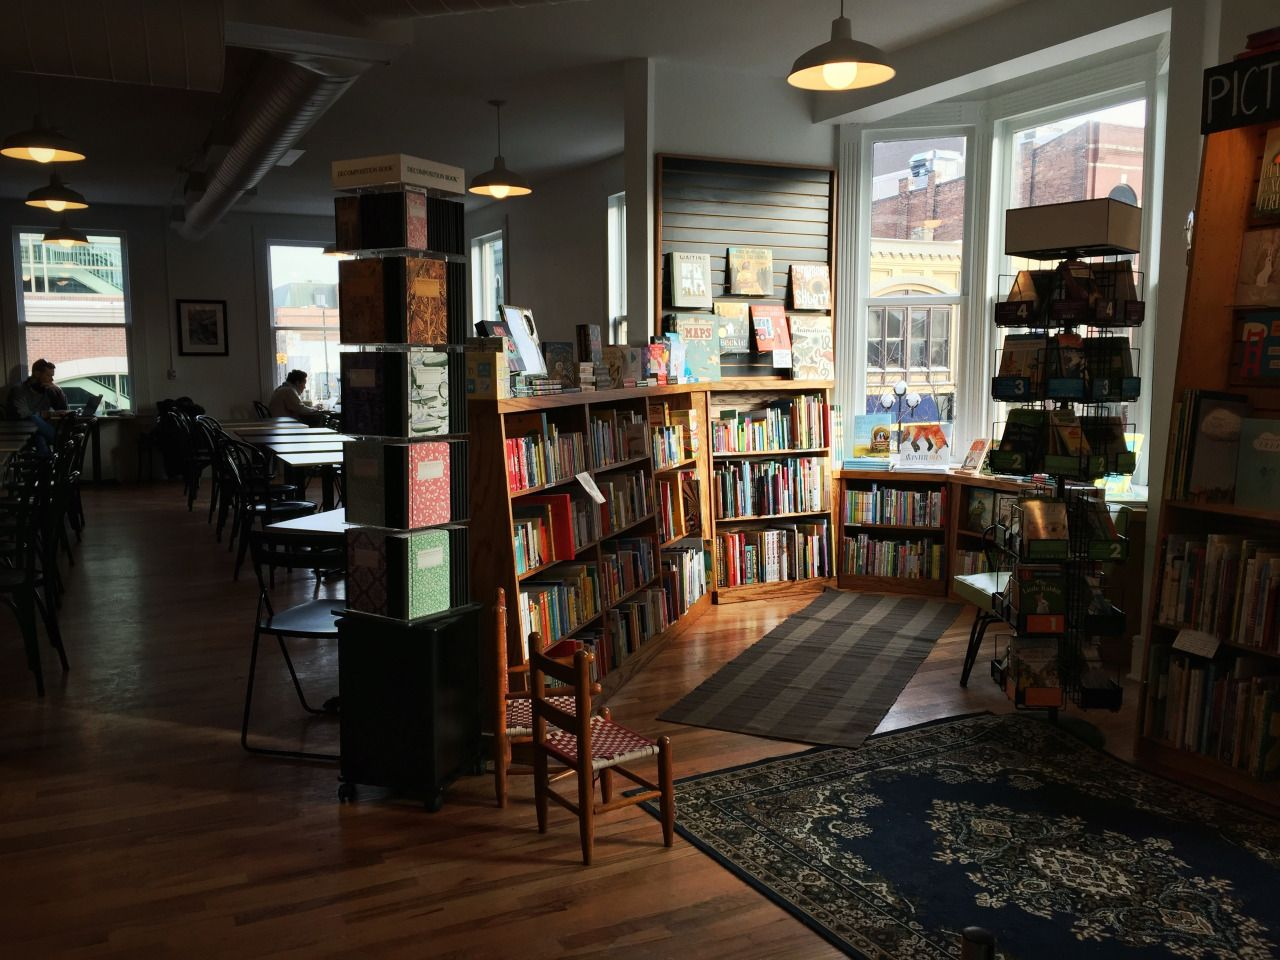 literatibookstore:  A quiet, soft winter morning in the kids area.